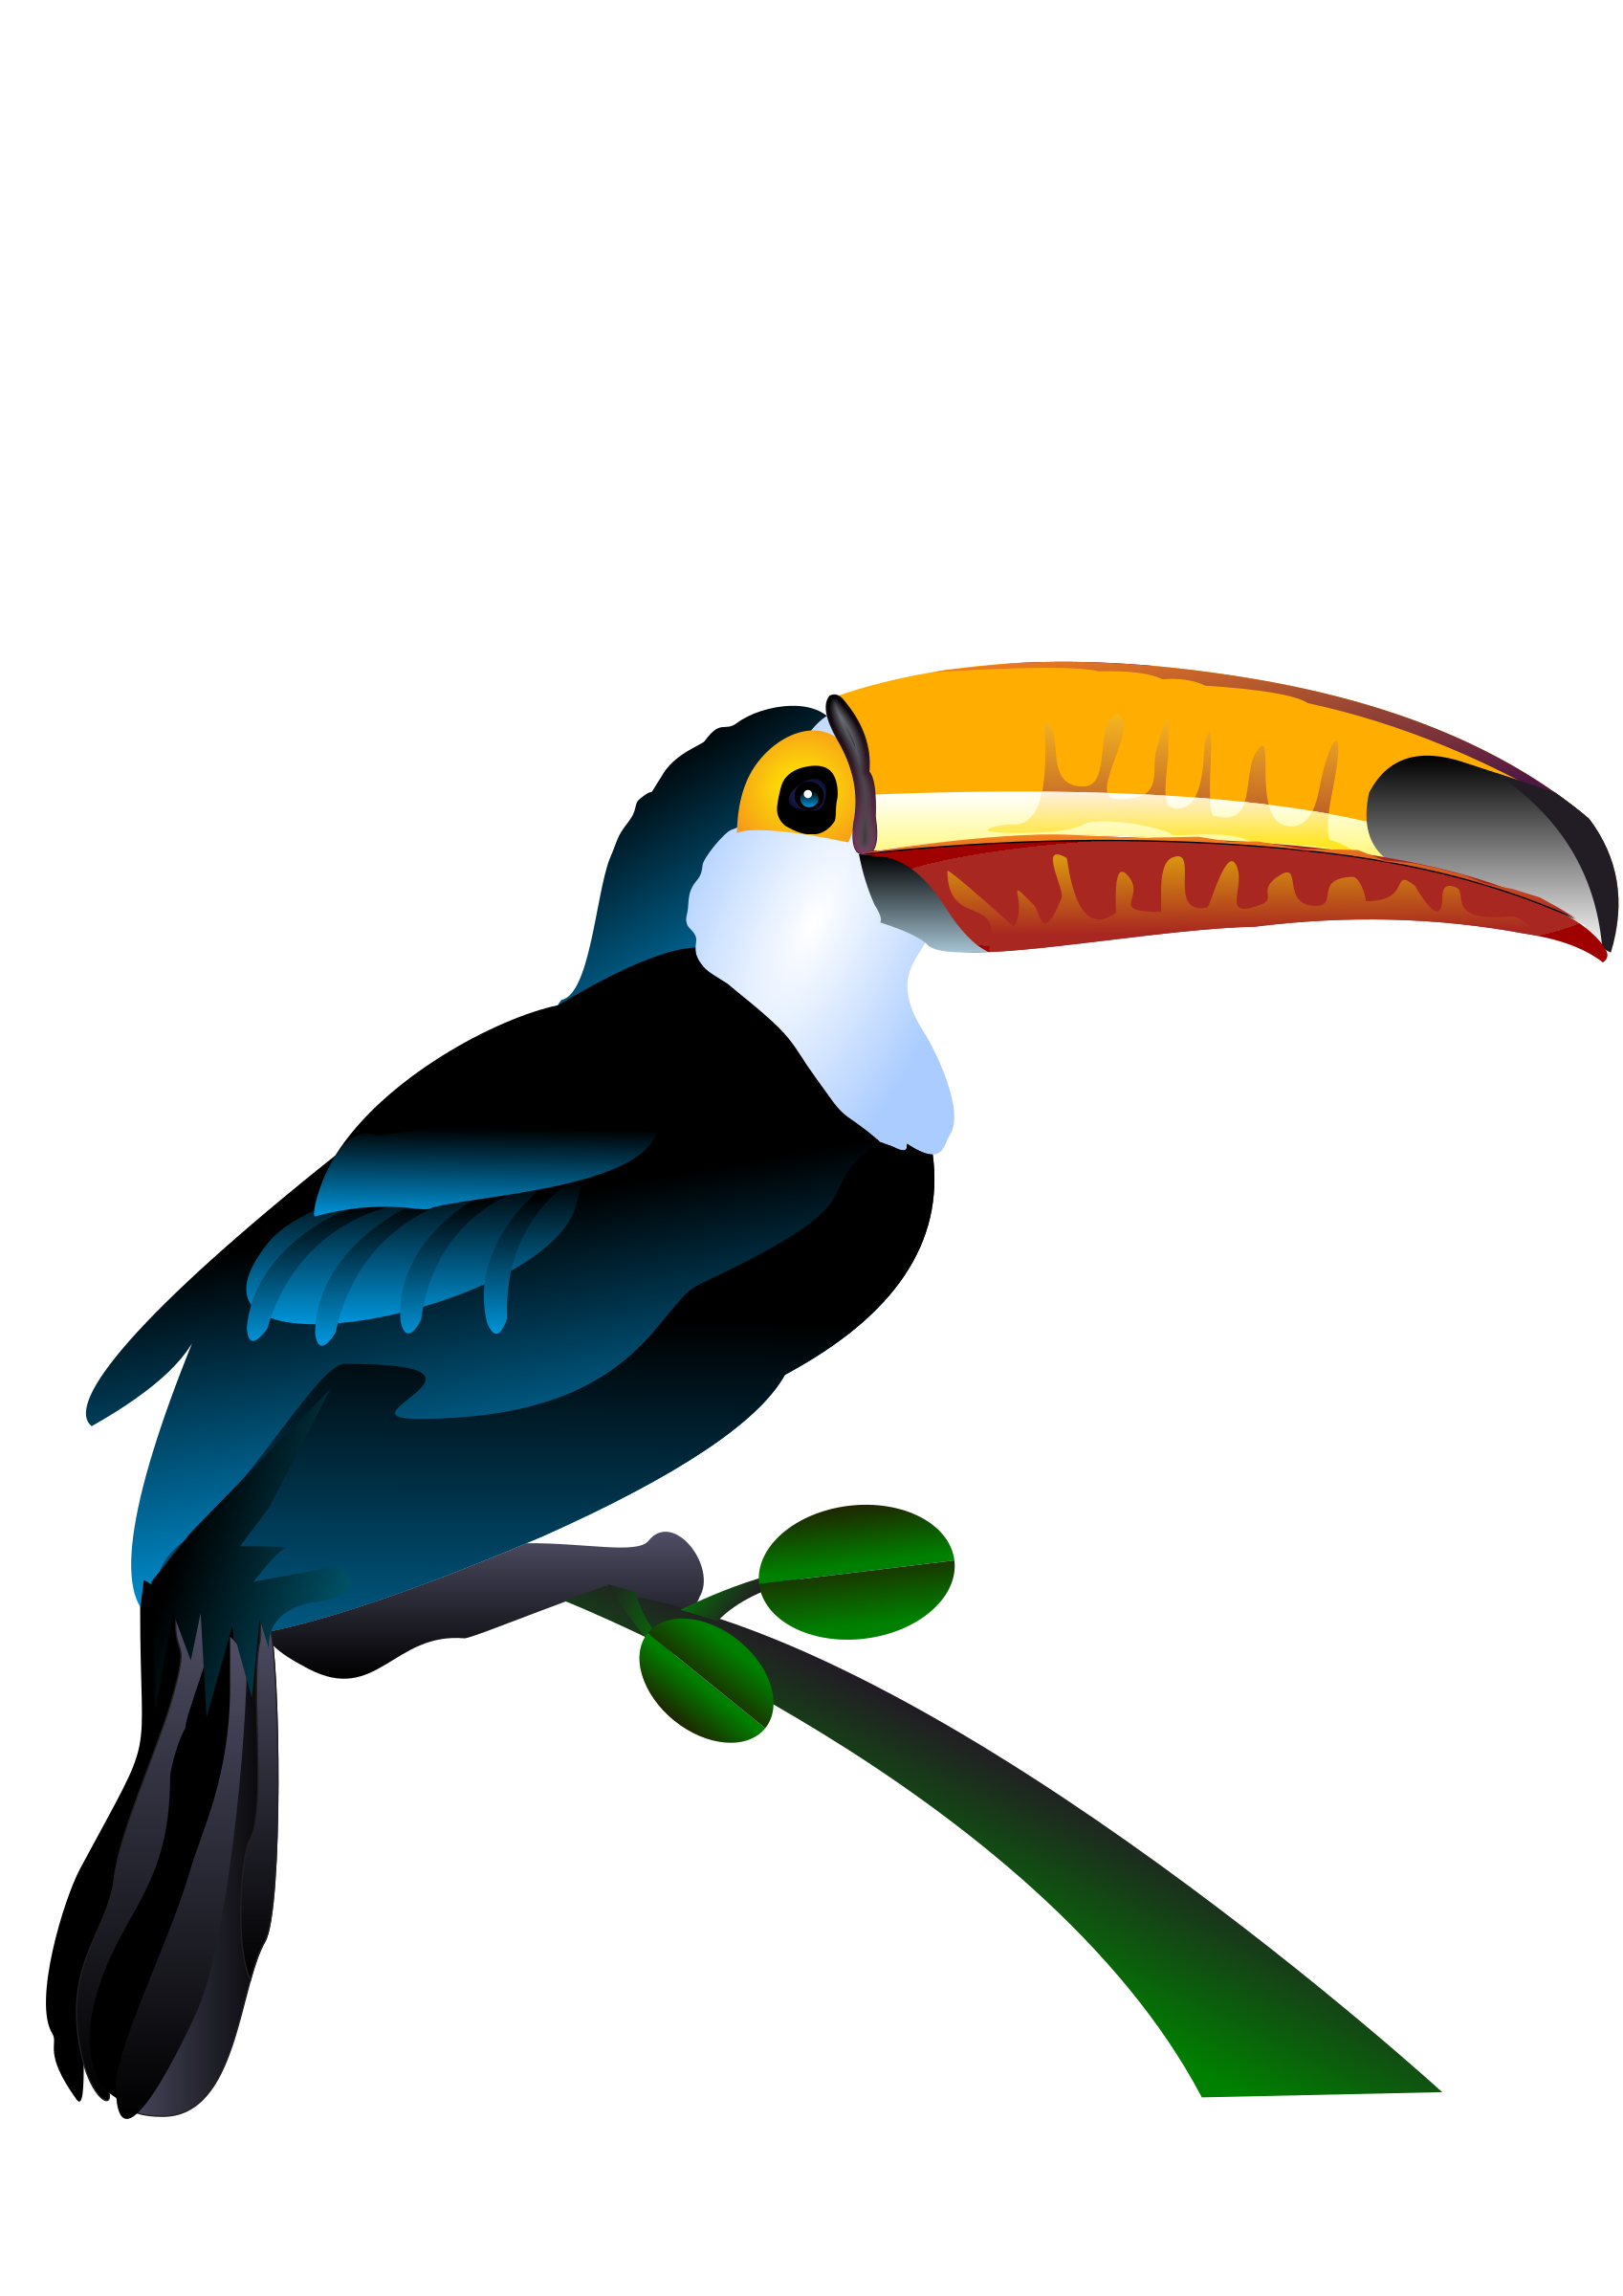 jpg freeuse download Painted free on dumielauxepices. Toucan clipart